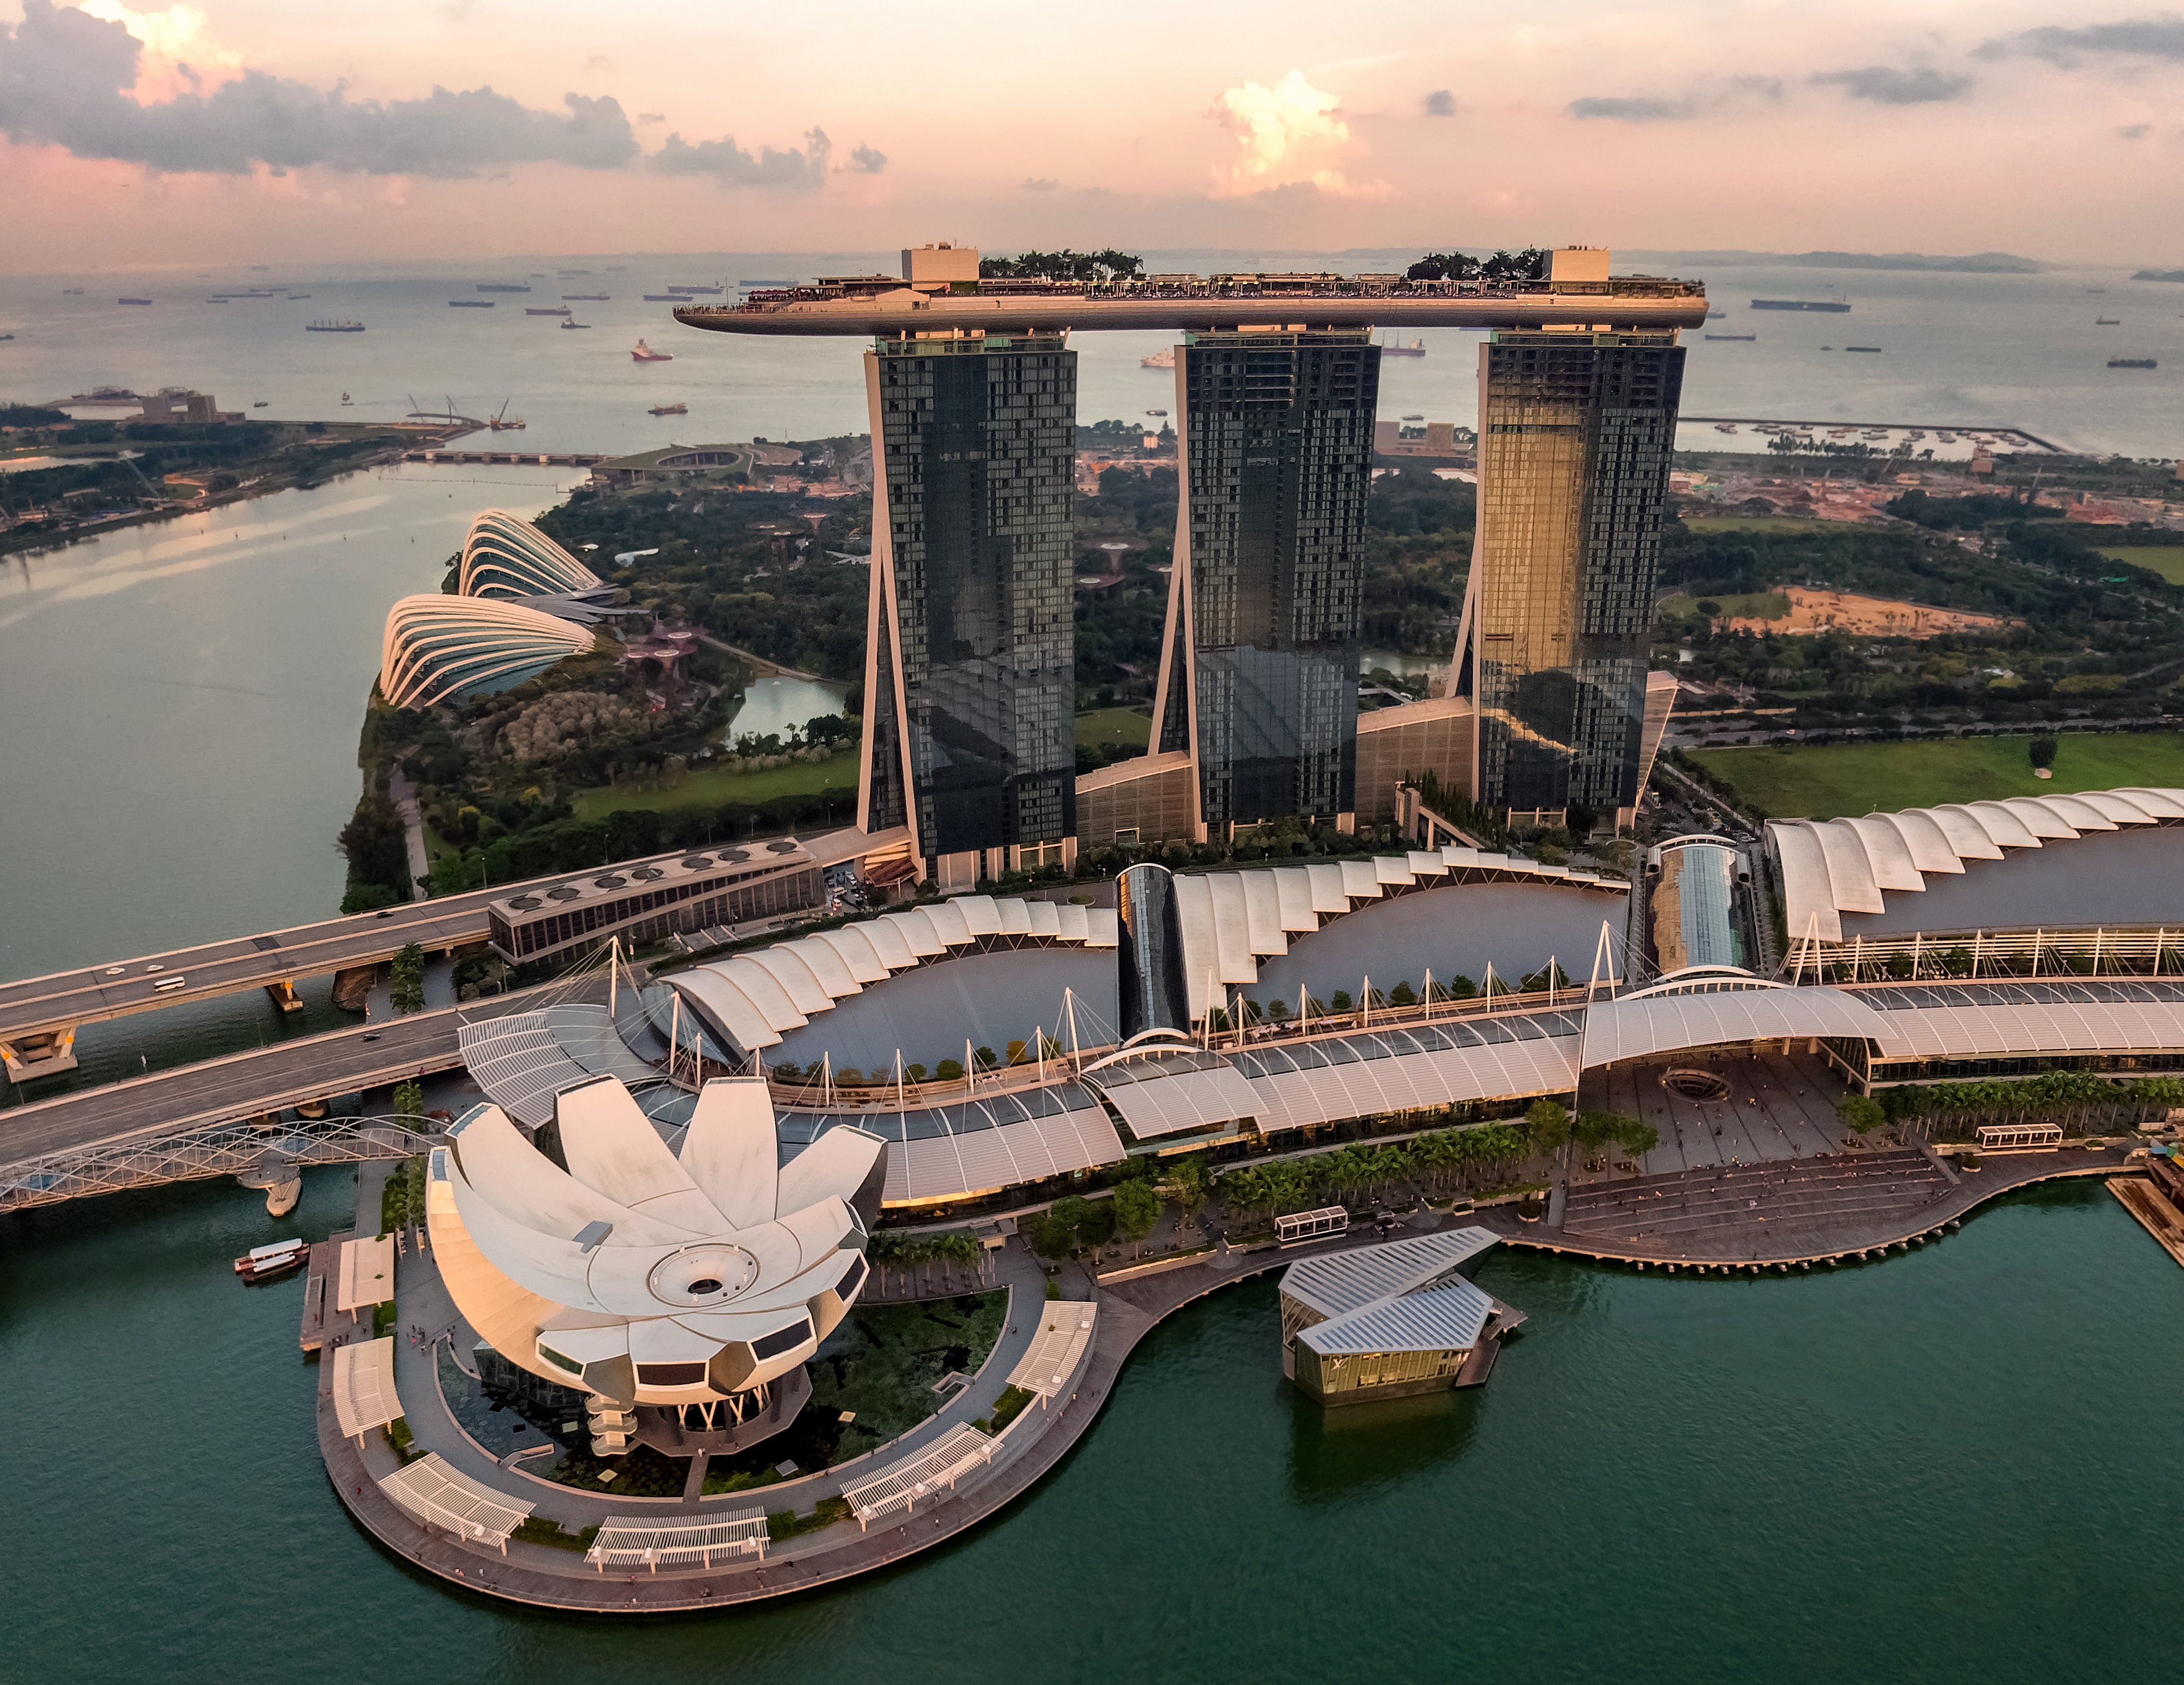 Singapore overview from the sky